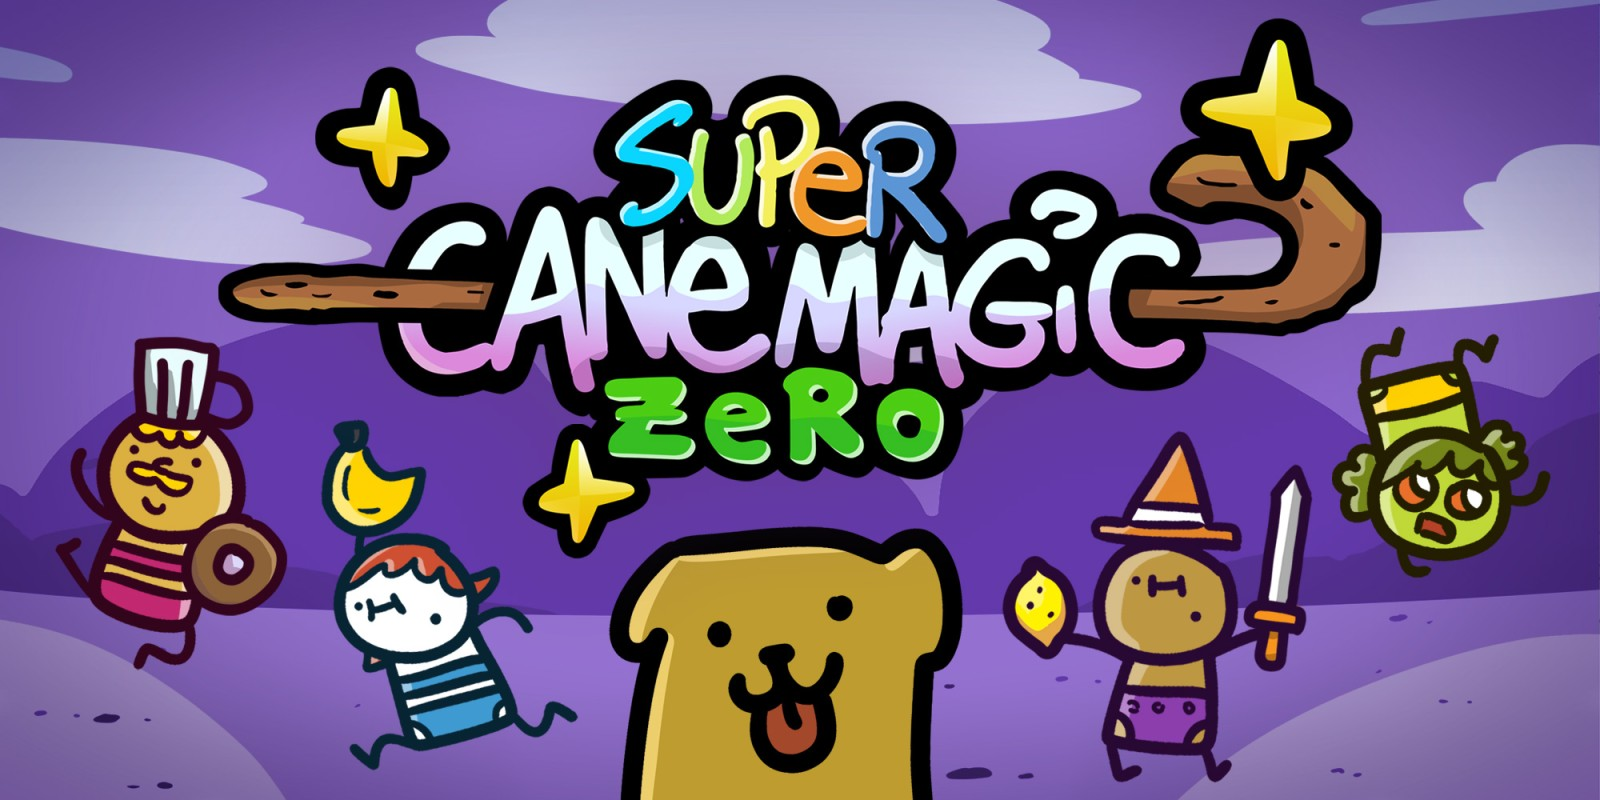 Super Cane Magic ZERO